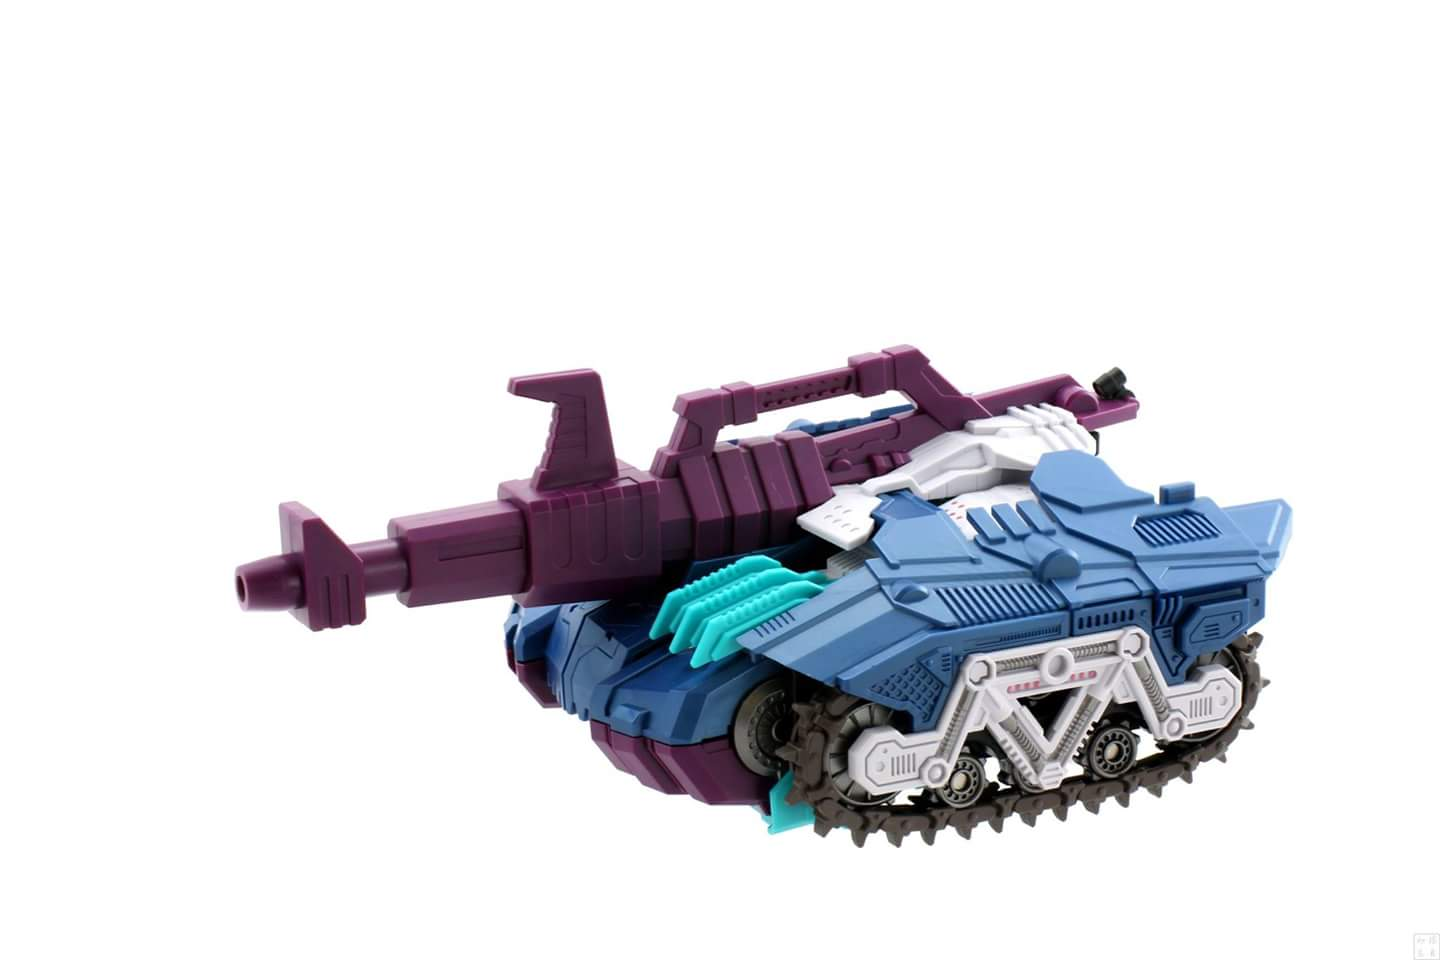 [Mastermind Creations] Produit Tiers - R-17 Carnifex - aka Overlord (TF Masterforce) - Page 3 IASBT0TH